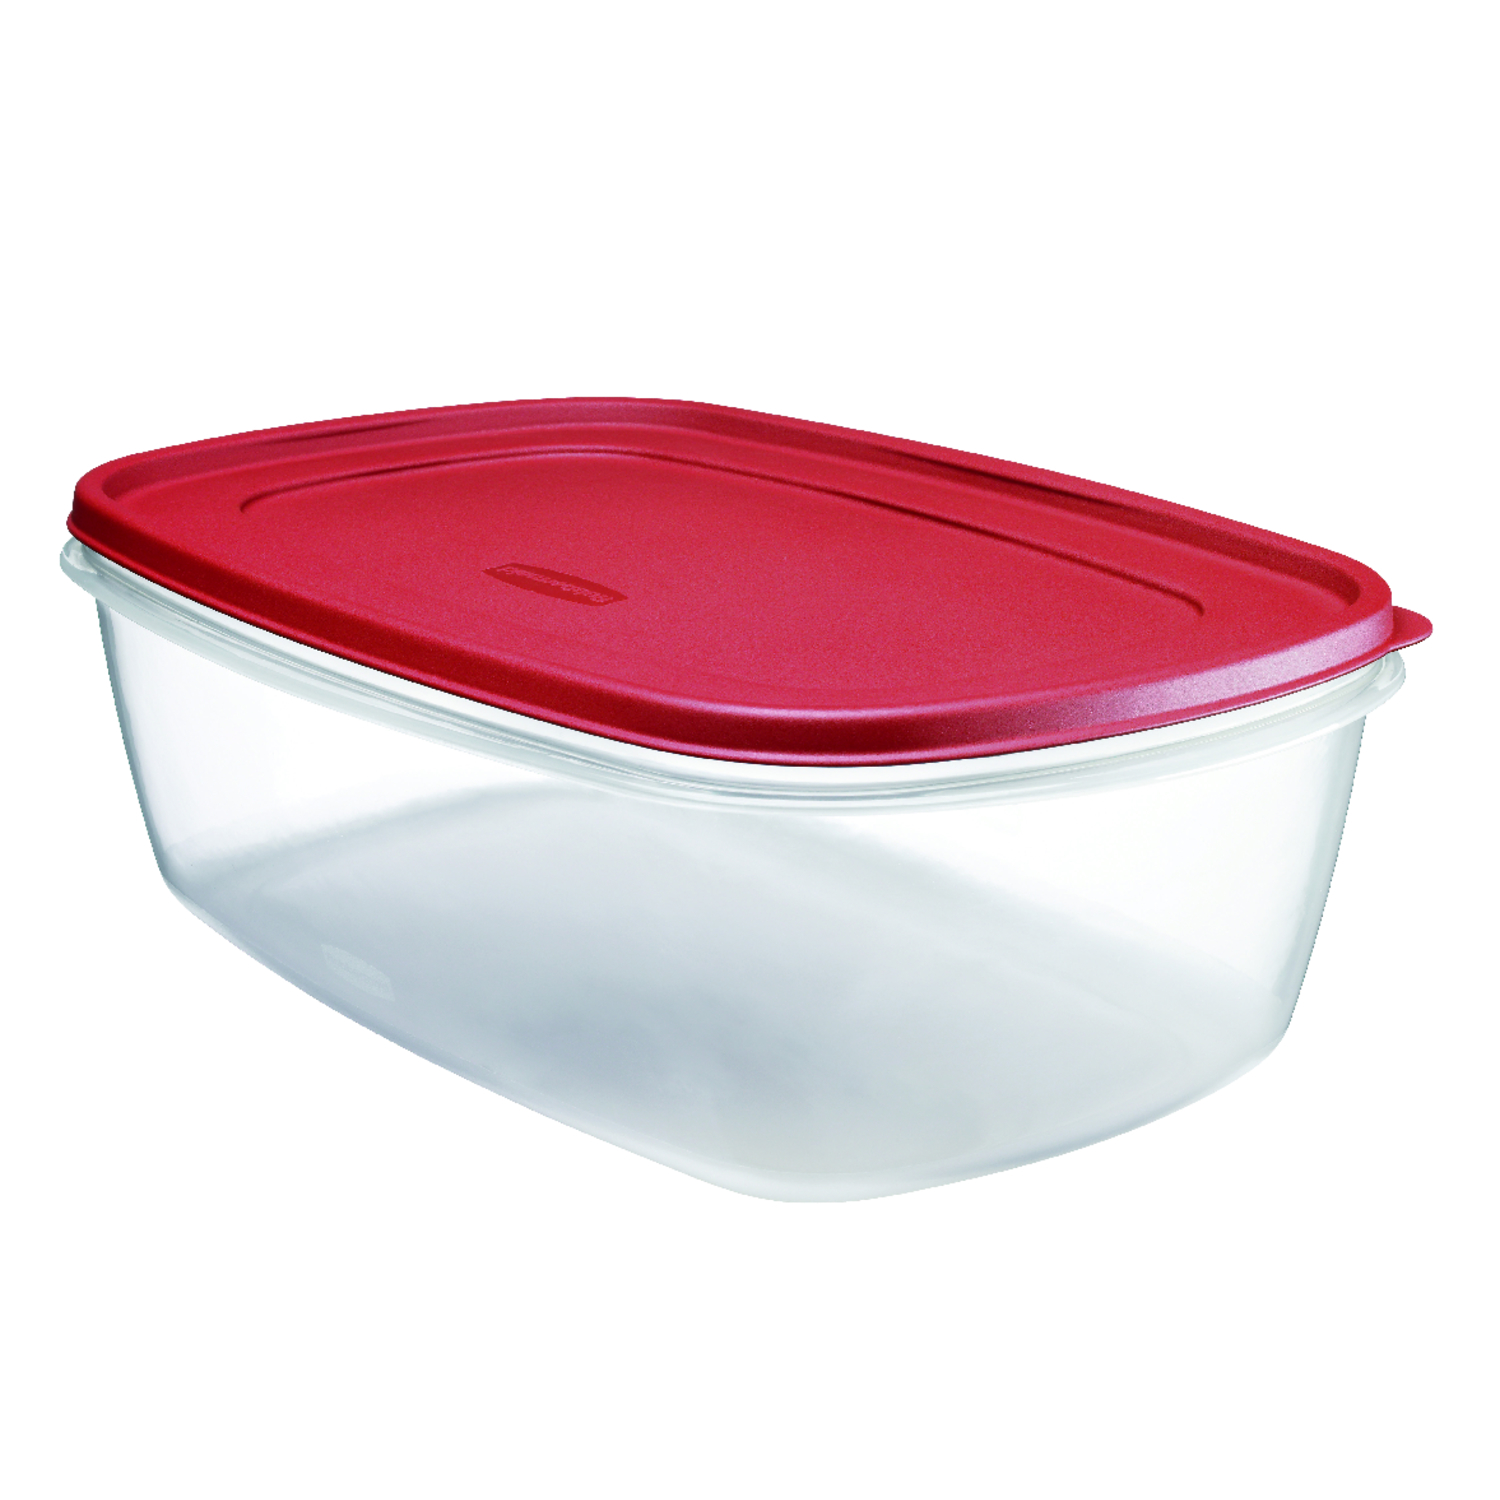 Rubbermaid Food Storage Container 25 gal Ace Hardware